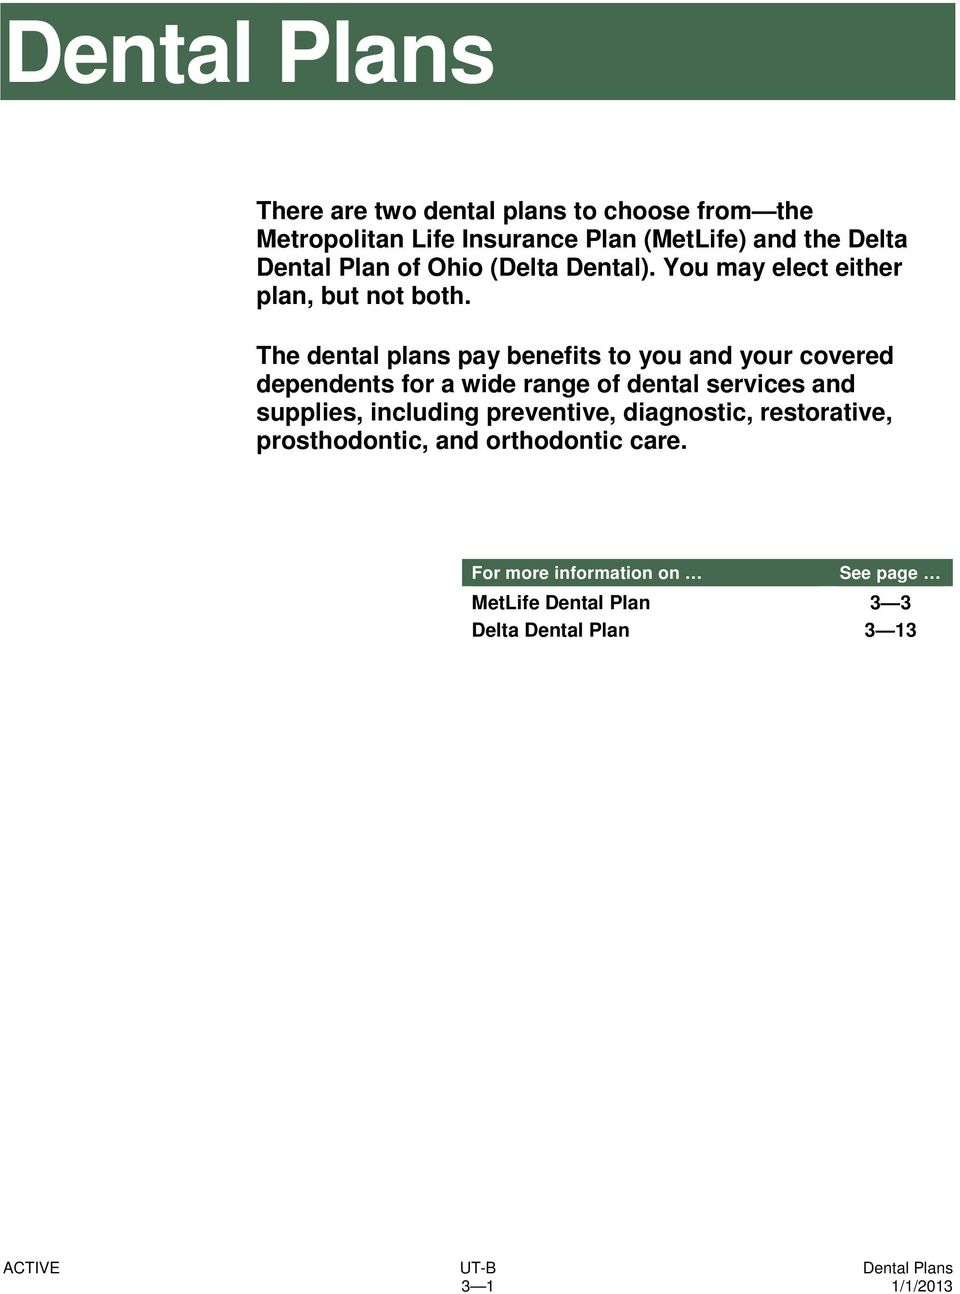 The dental plans pay benefits to you and your covered dependents for a wide range of dental services and supplies,